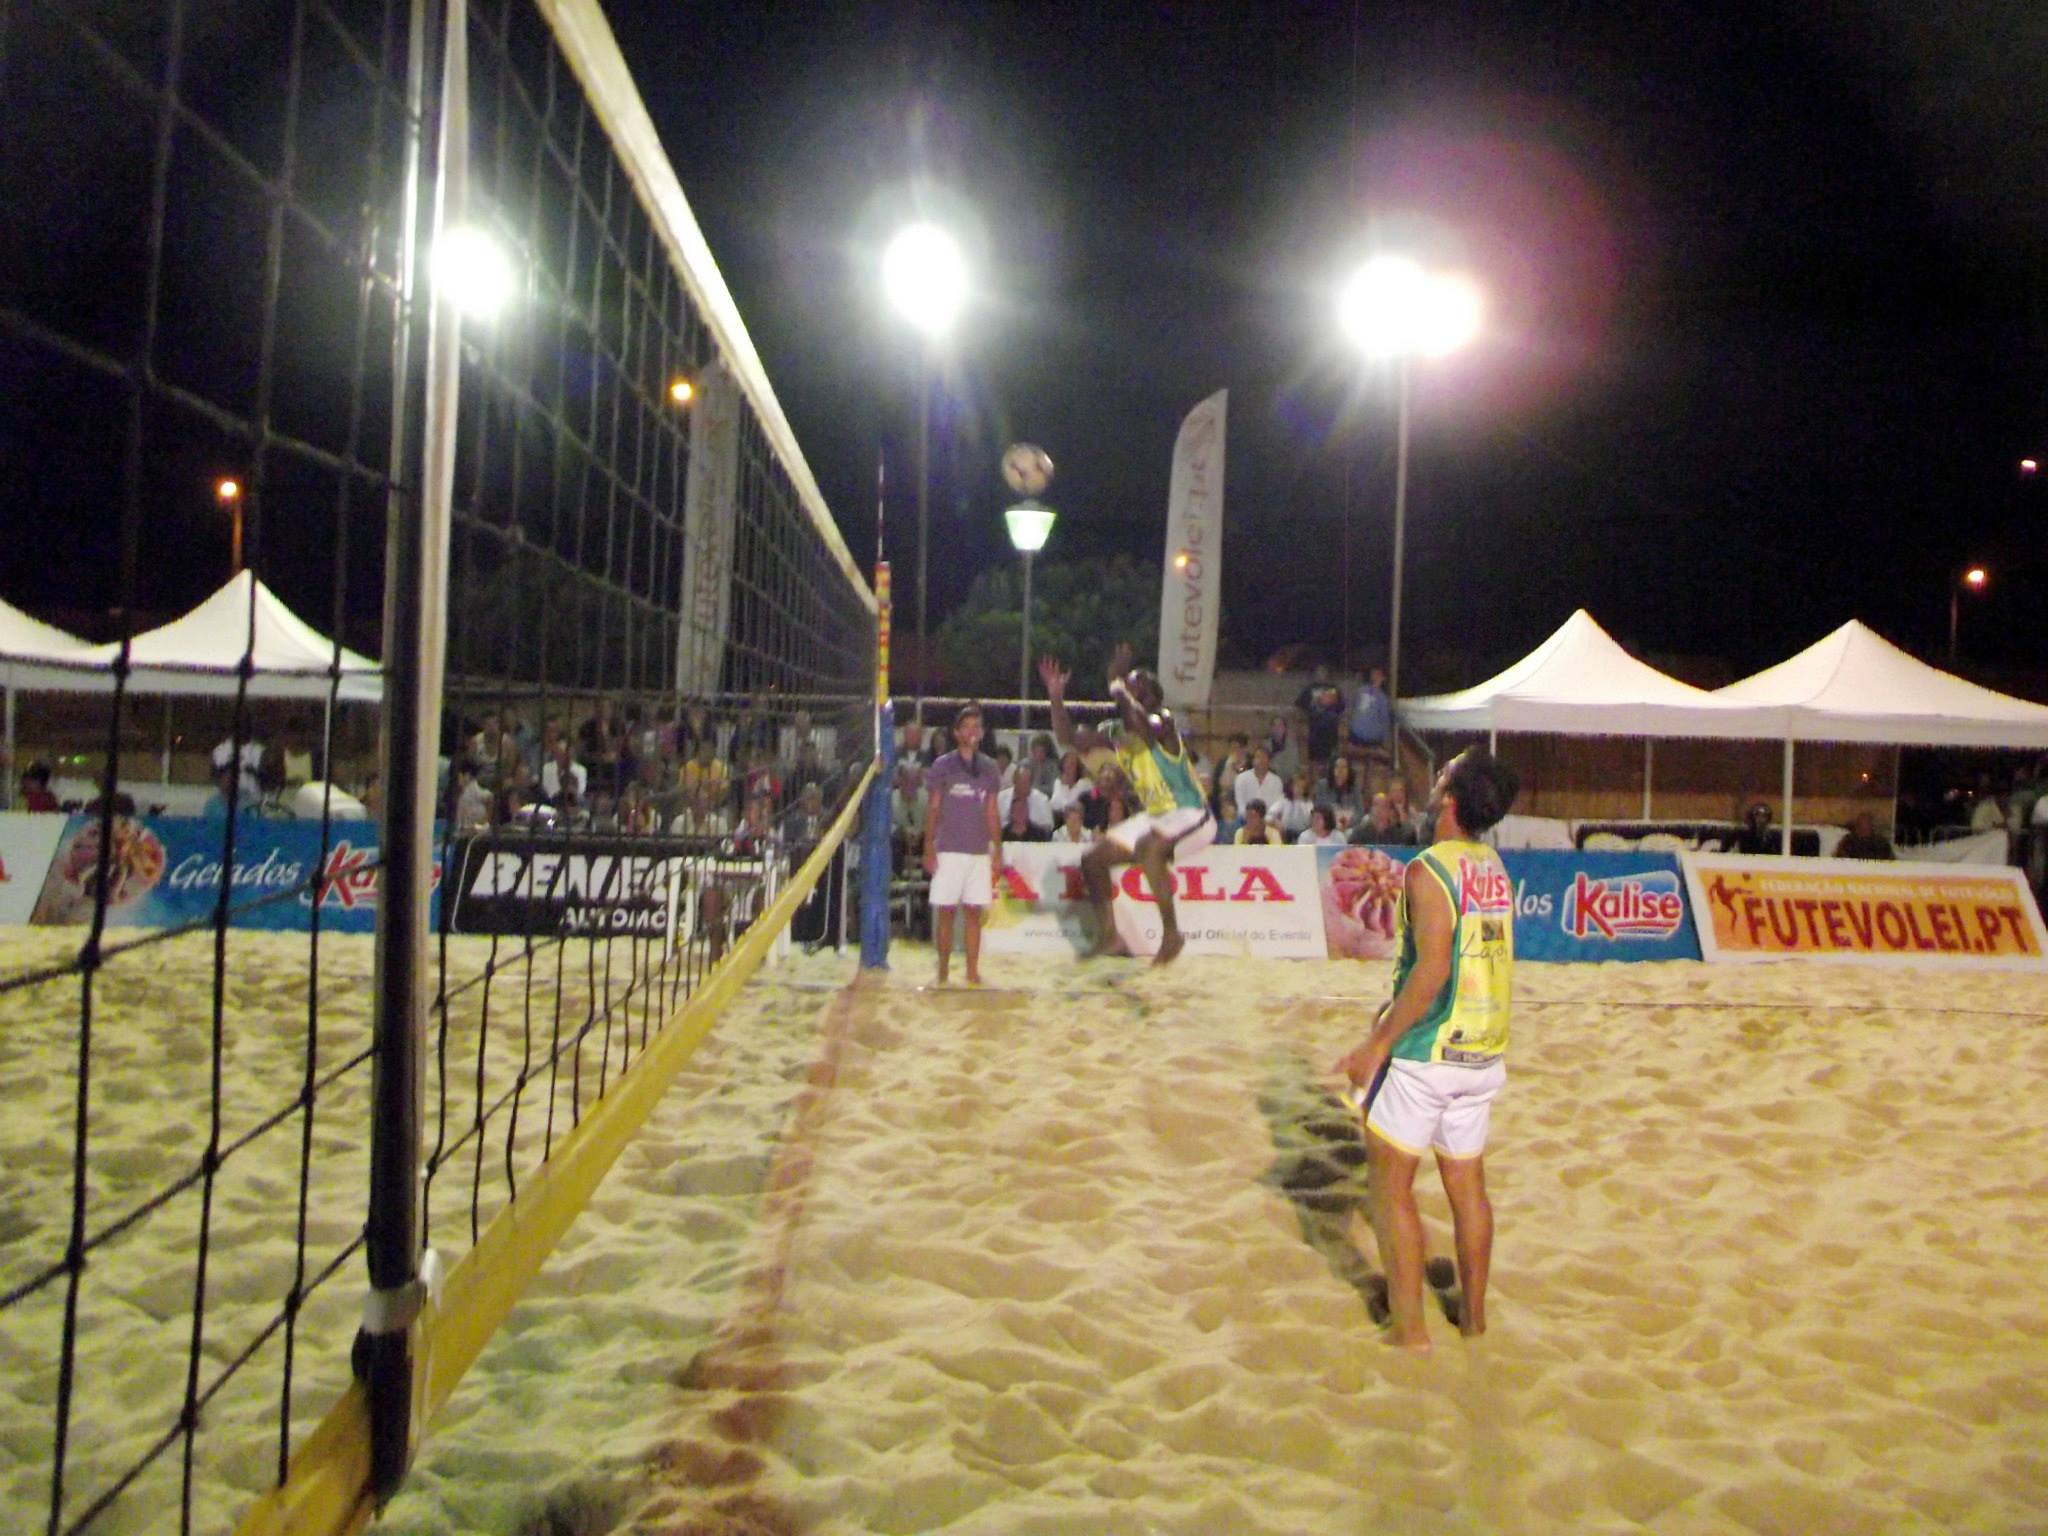 3rd stage - National Footvolley Championship 2013 - Santa Luzia, Tavira